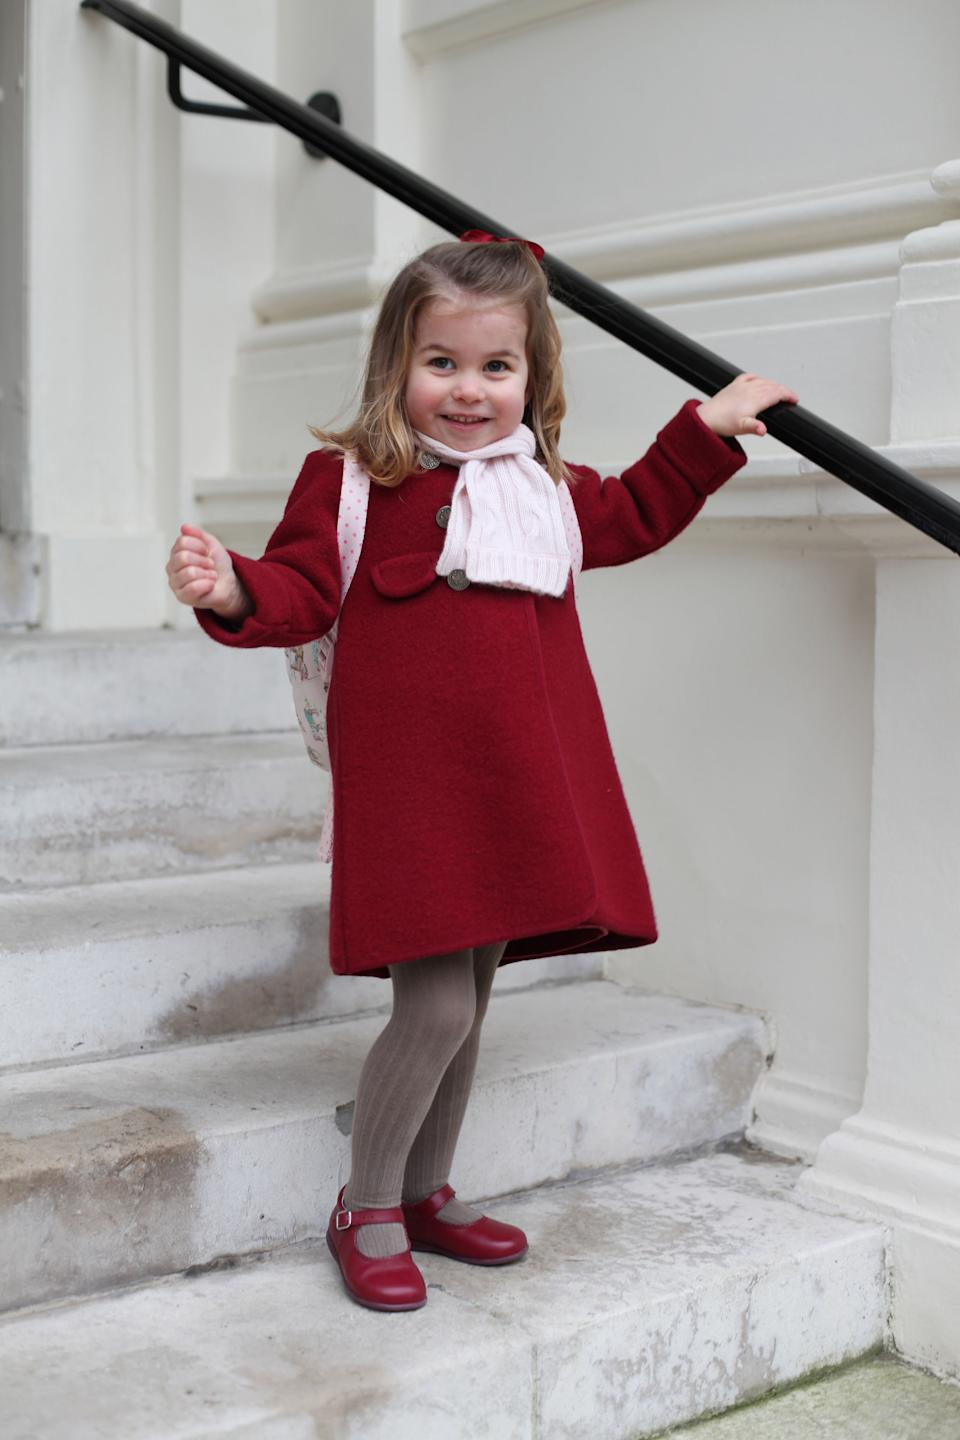 Princess Charlotte pictured on her first day of nursery in 2018. [Photo: PA]